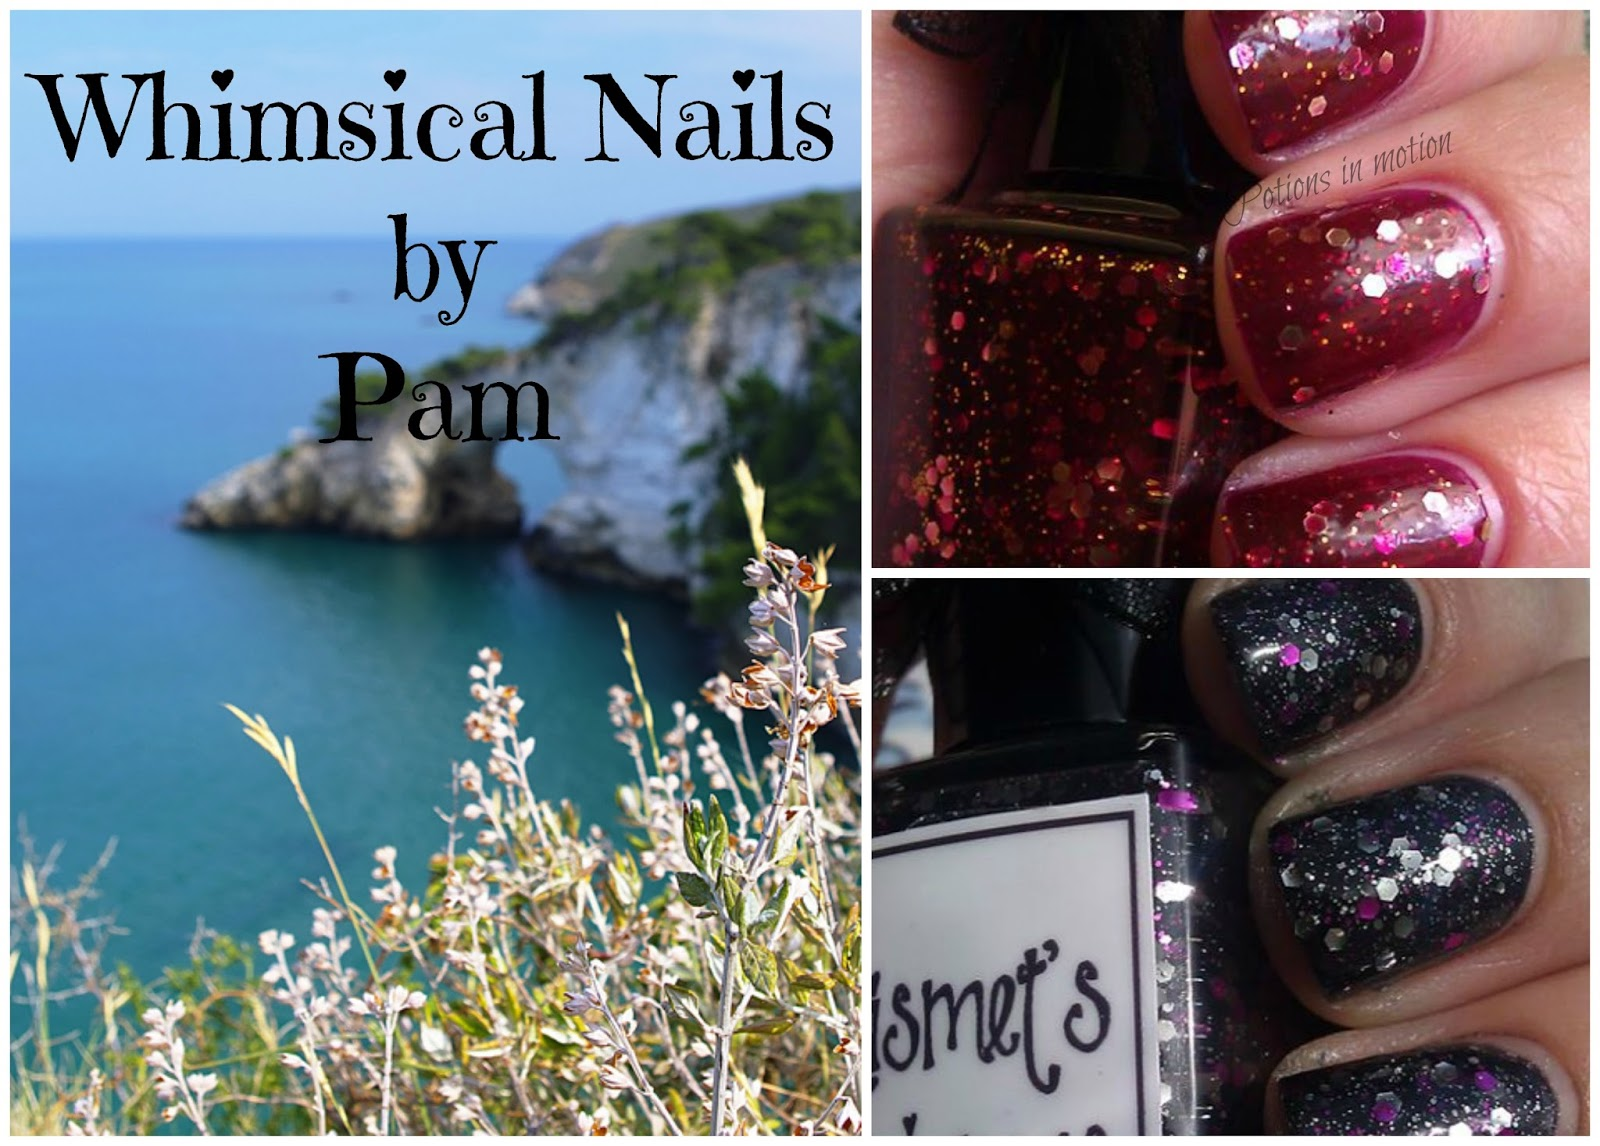 Potions in motion nail blog: Whimsical nails by Pam ~ Peanut butter ...